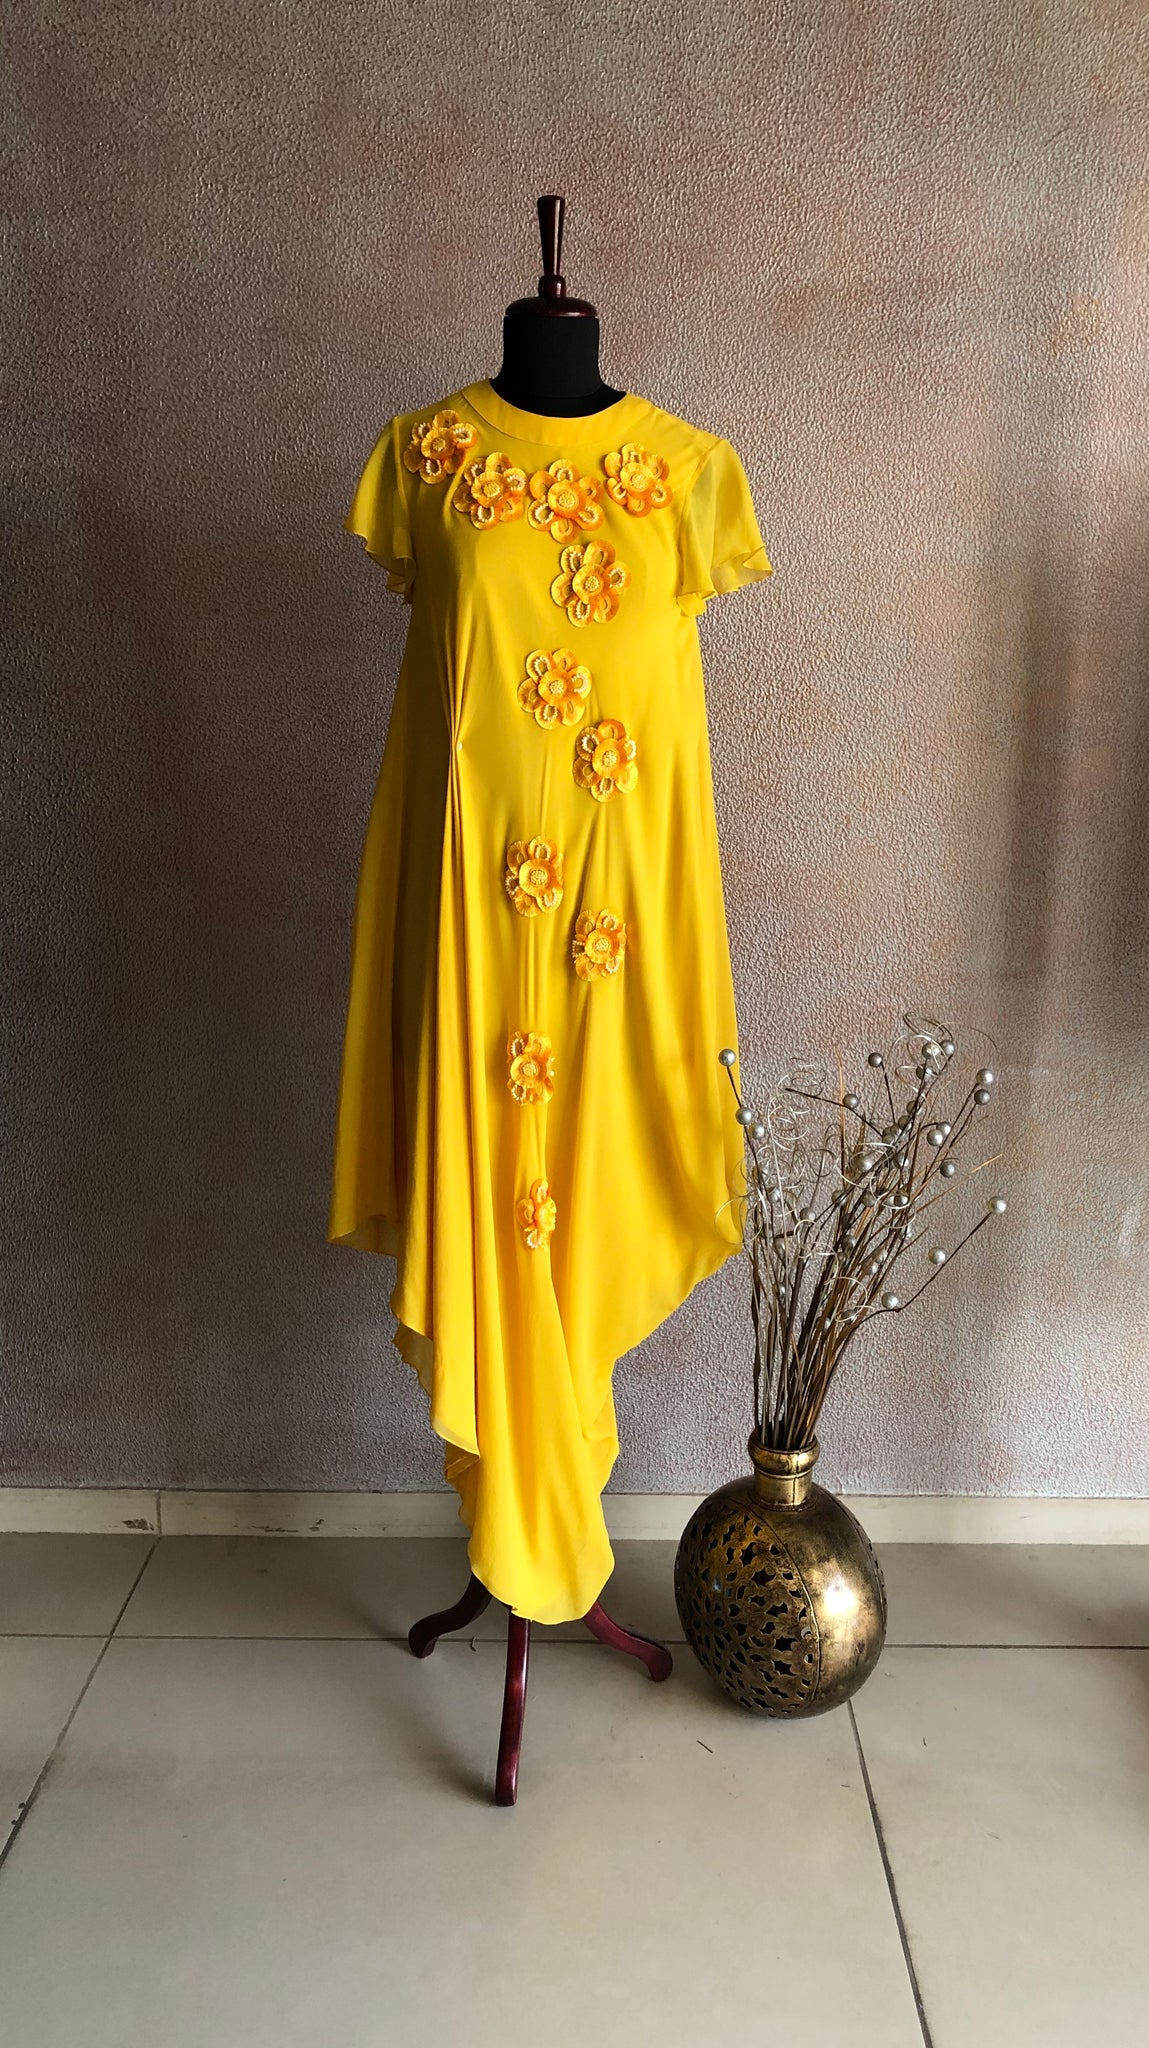 URVASHI JONEJA - 3D Embellished Yellow Dress